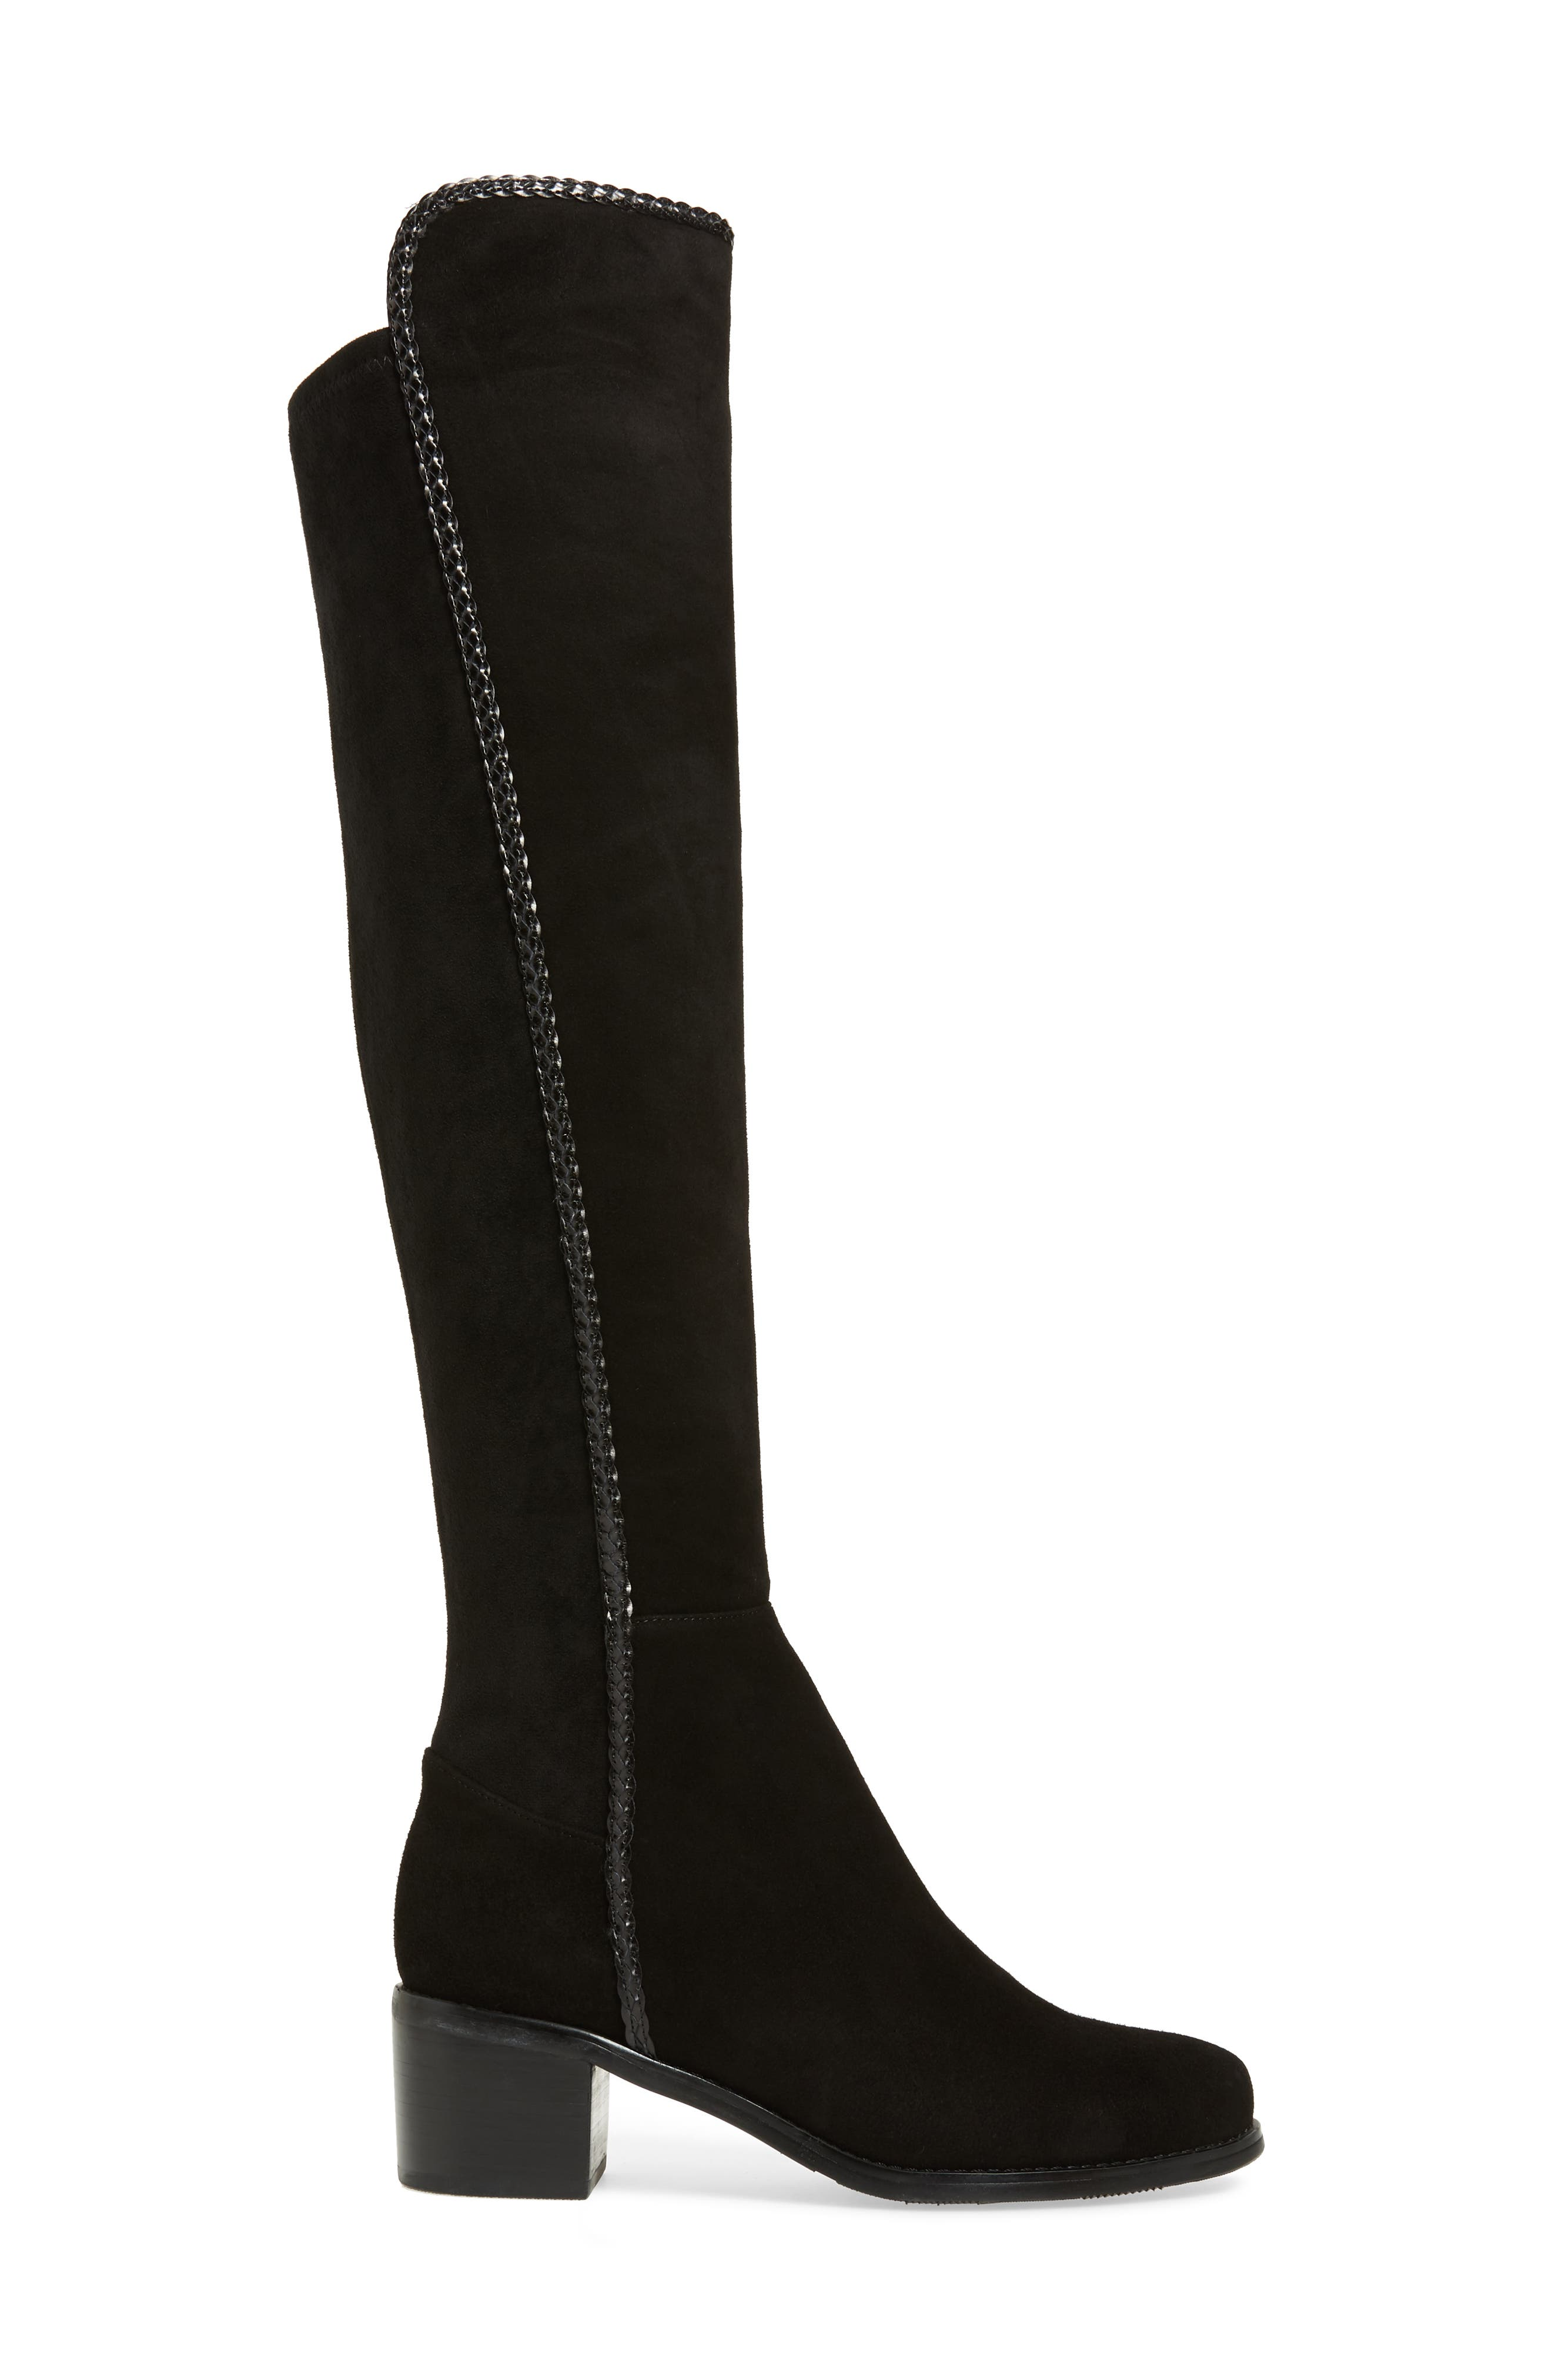 Florence Waterproof Over the Knee Boot,                             Alternate thumbnail 3, color,                             BLACK SUEDE